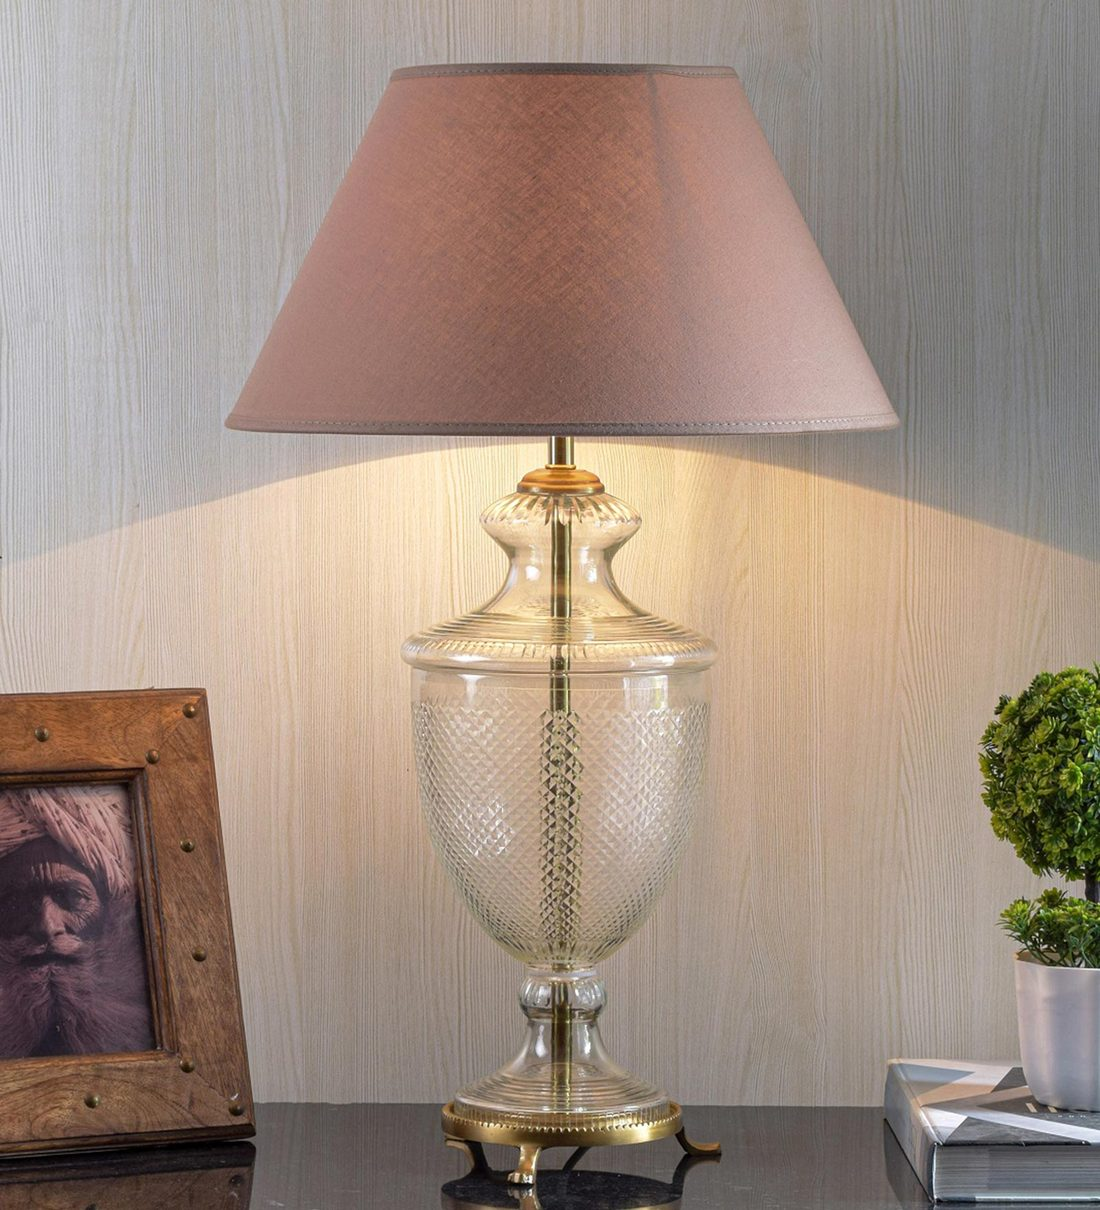 Buy Beige Cotton Shade Table Lamp With Clear Glass Base By Kapoor E Illuminations Online Modern And Contemporary Table Lamps Table Lamps Lamps Lighting Pepperfry Product